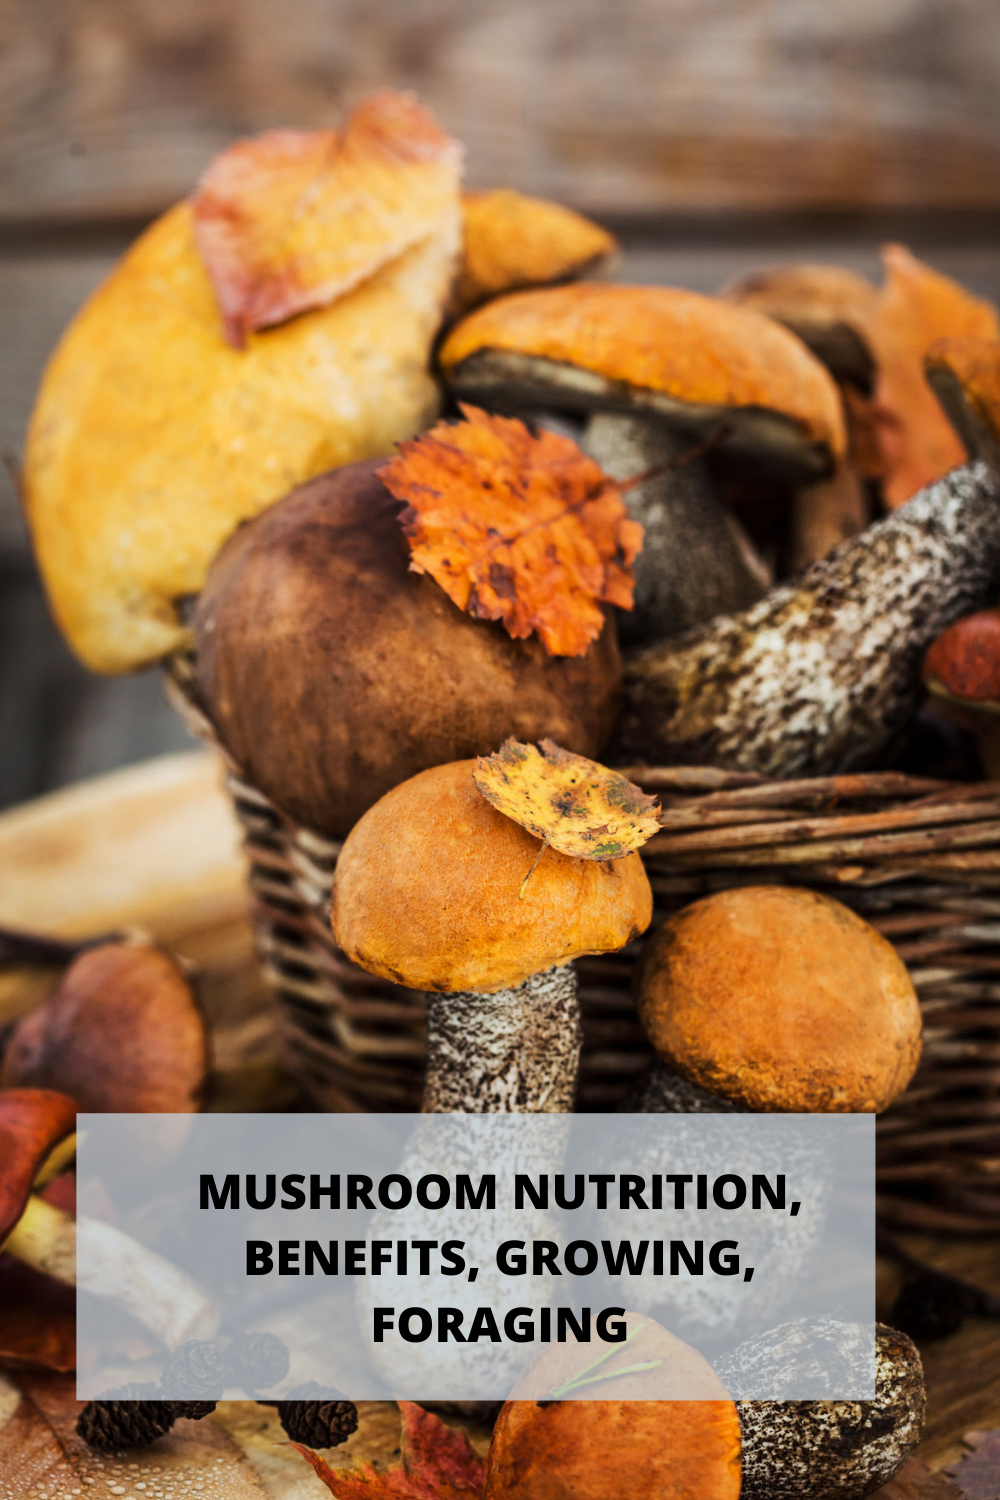 Mushroom Nutrition and Benefits